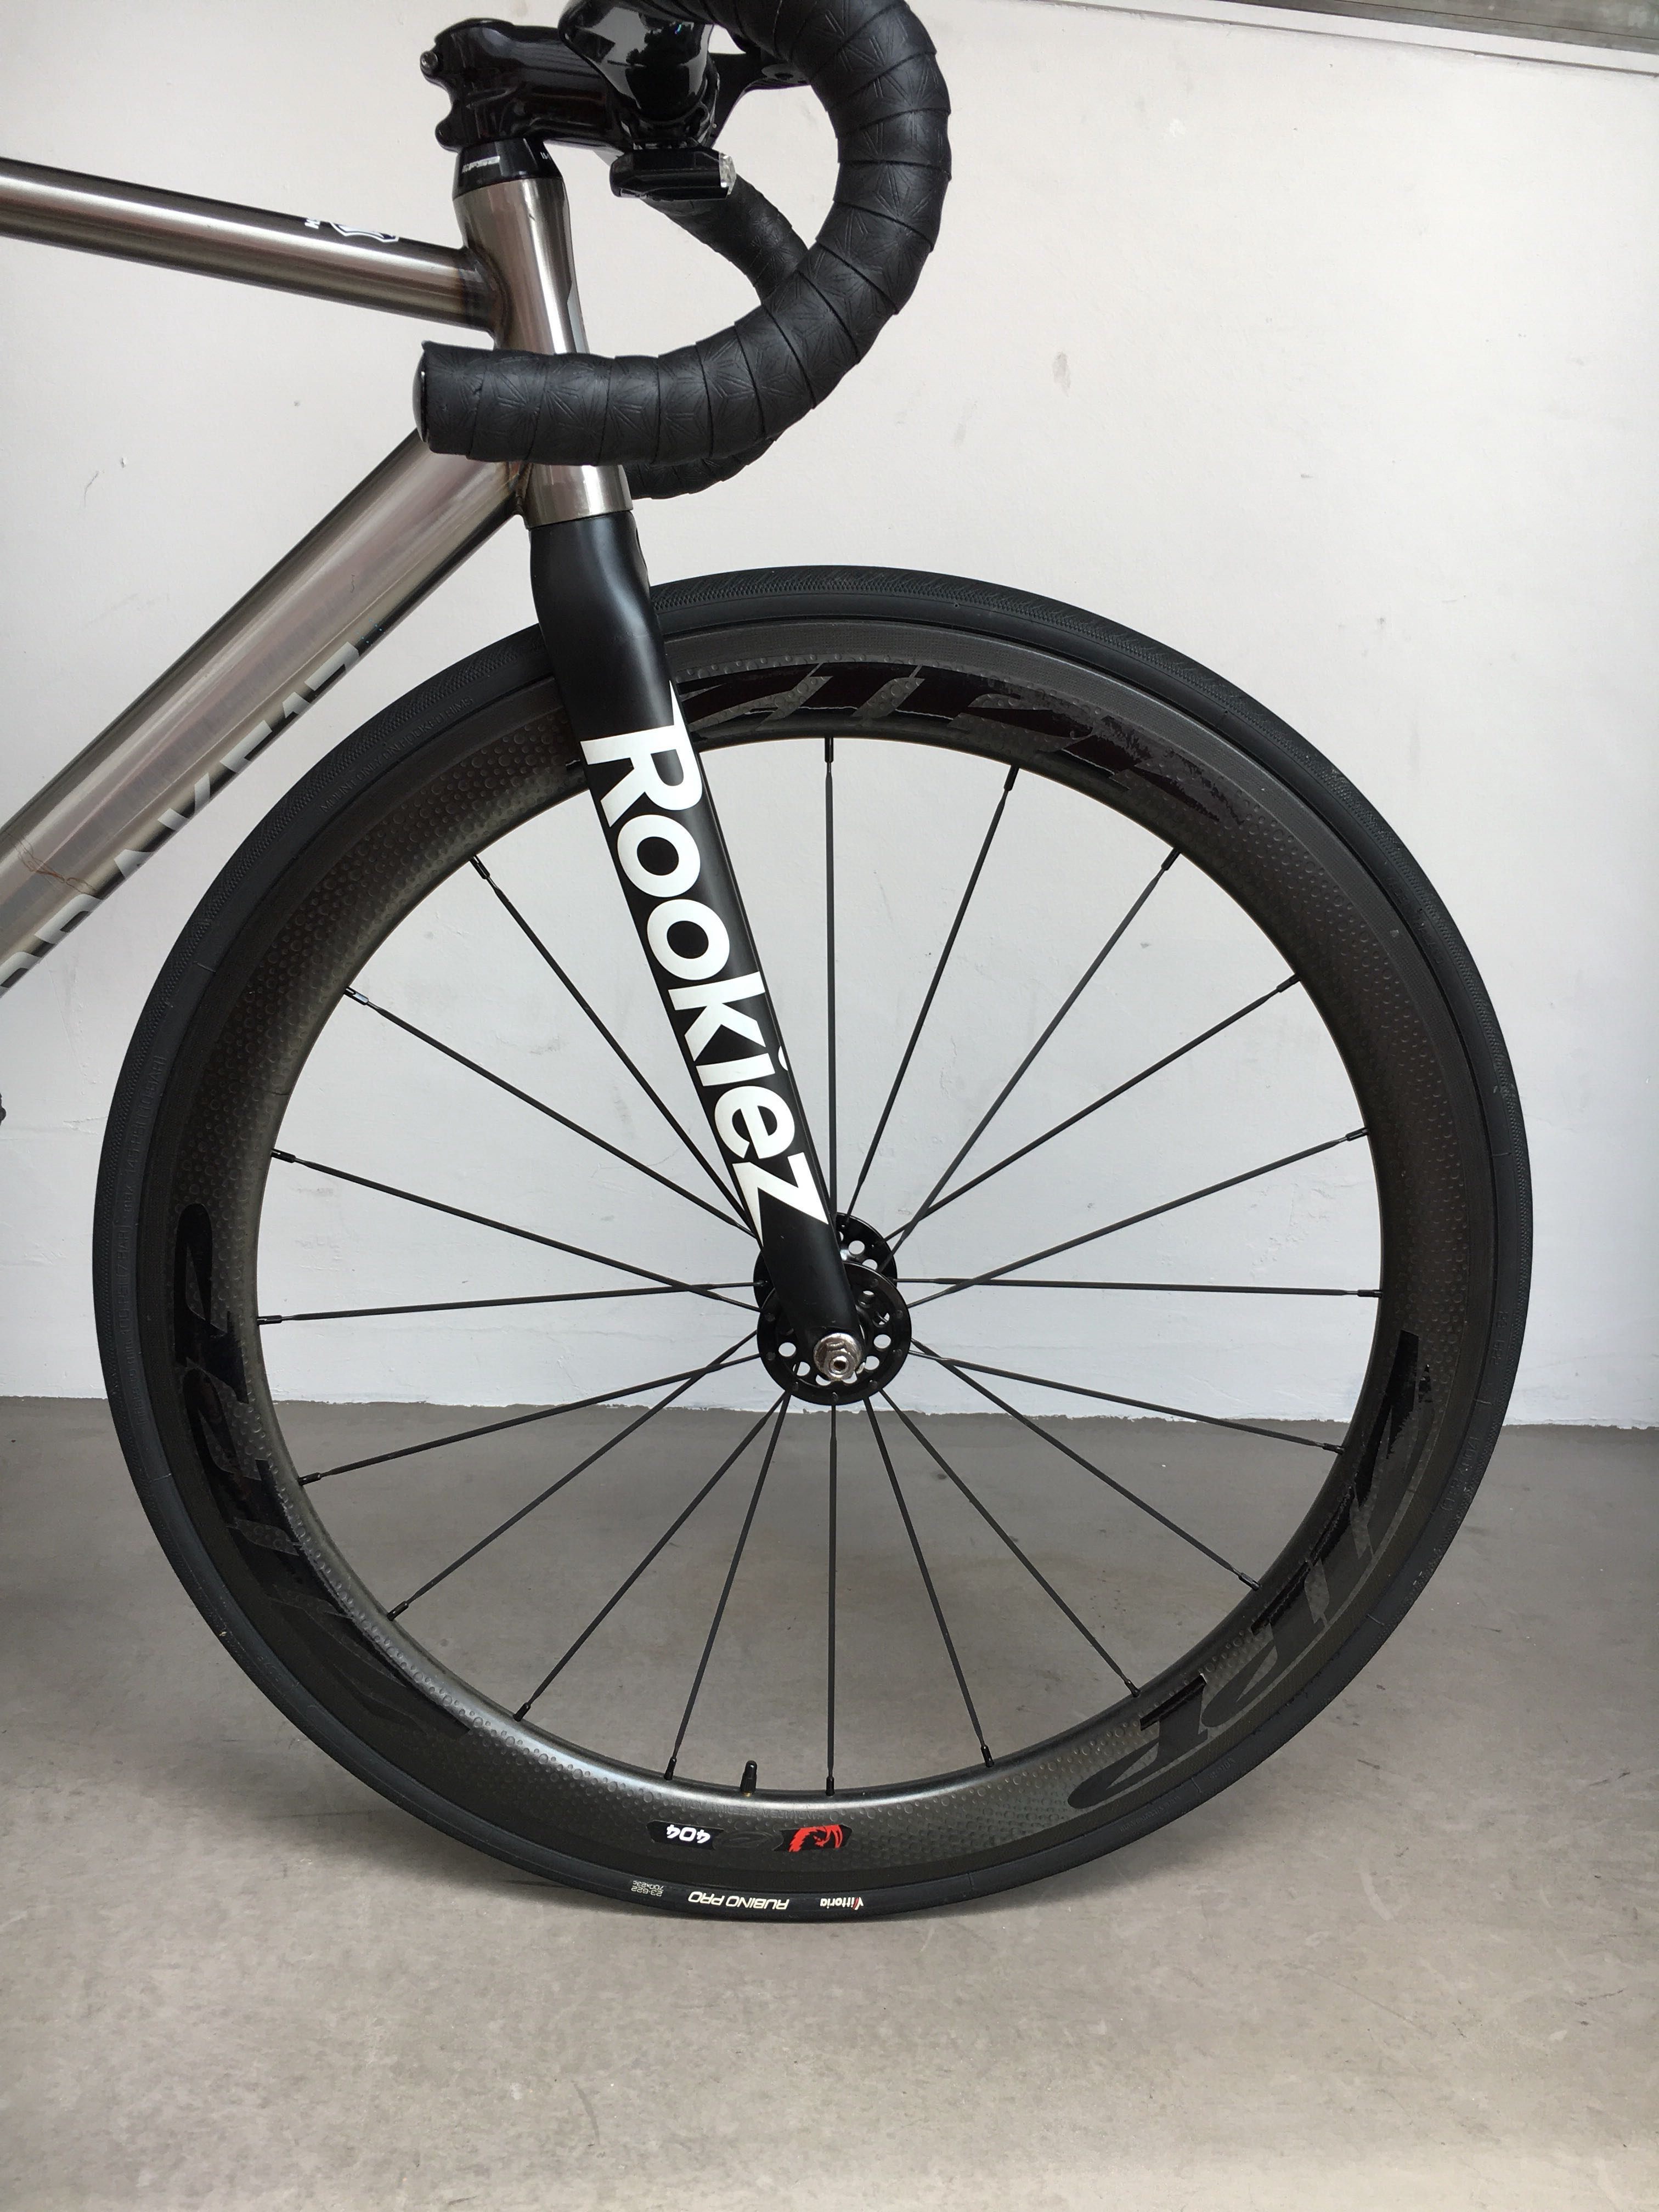 412993c6aba Zipp 404 firecrest track clincher wheelset, Bicycles & PMDs, Bicycles on  Carousell